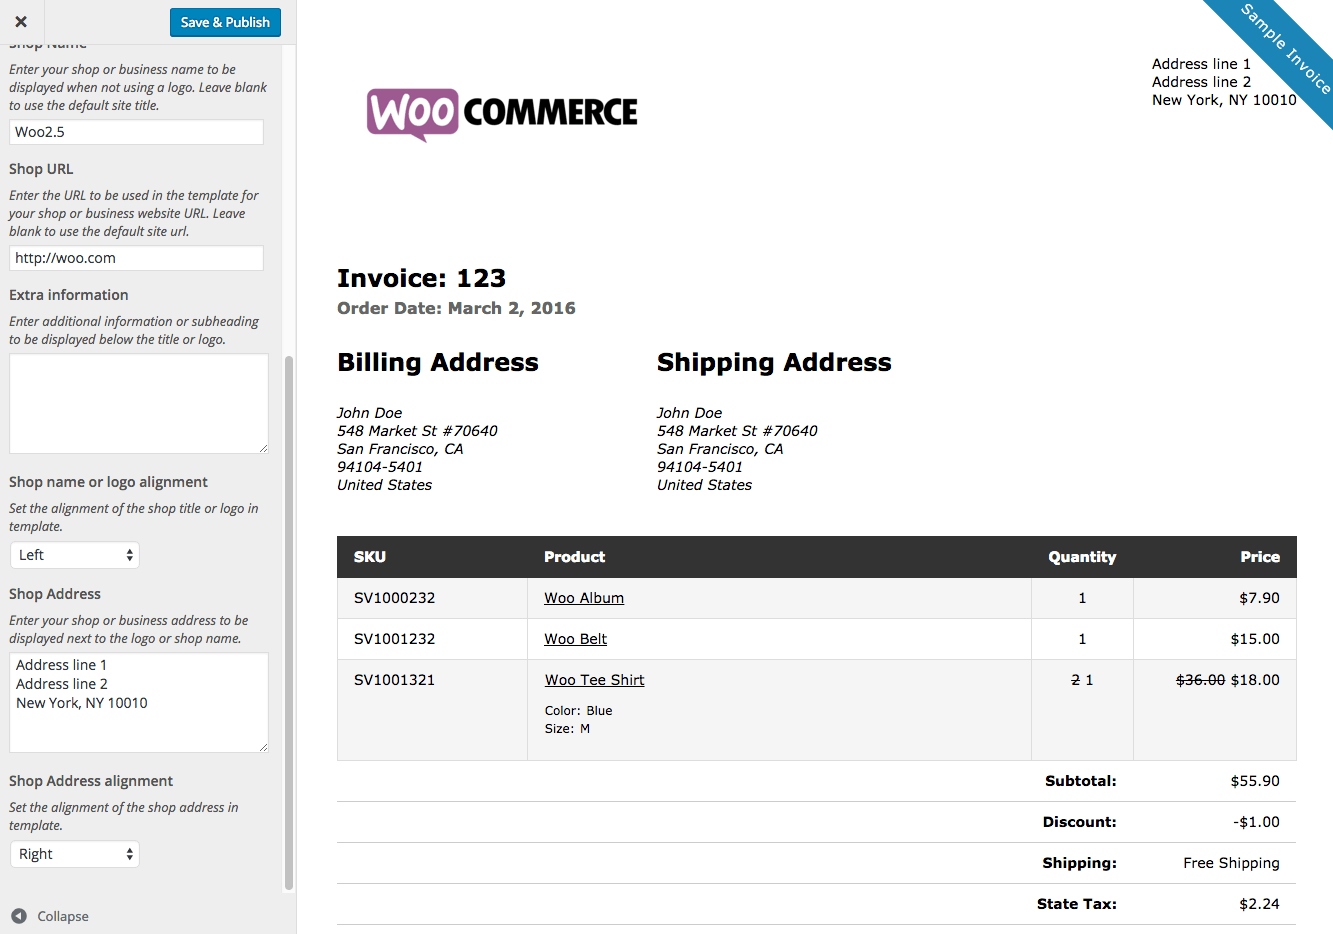 Reliefworkersus  Marvelous Woocommerce Print Invoices Amp Packing Lists  Woocommerce Docs With Engaging Woocommerce Print Invoices  Packing Lists Customizer With Attractive How To Make A Donation Receipt Also Trust Receipt Facility In Addition Rent Receipt Word Doc And Other Words For Receipt As Well As Receipts In Spanish Additionally Tiffany Receipt From Docswoocommercecom With Reliefworkersus  Engaging Woocommerce Print Invoices Amp Packing Lists  Woocommerce Docs With Attractive Woocommerce Print Invoices  Packing Lists Customizer And Marvelous How To Make A Donation Receipt Also Trust Receipt Facility In Addition Rent Receipt Word Doc From Docswoocommercecom